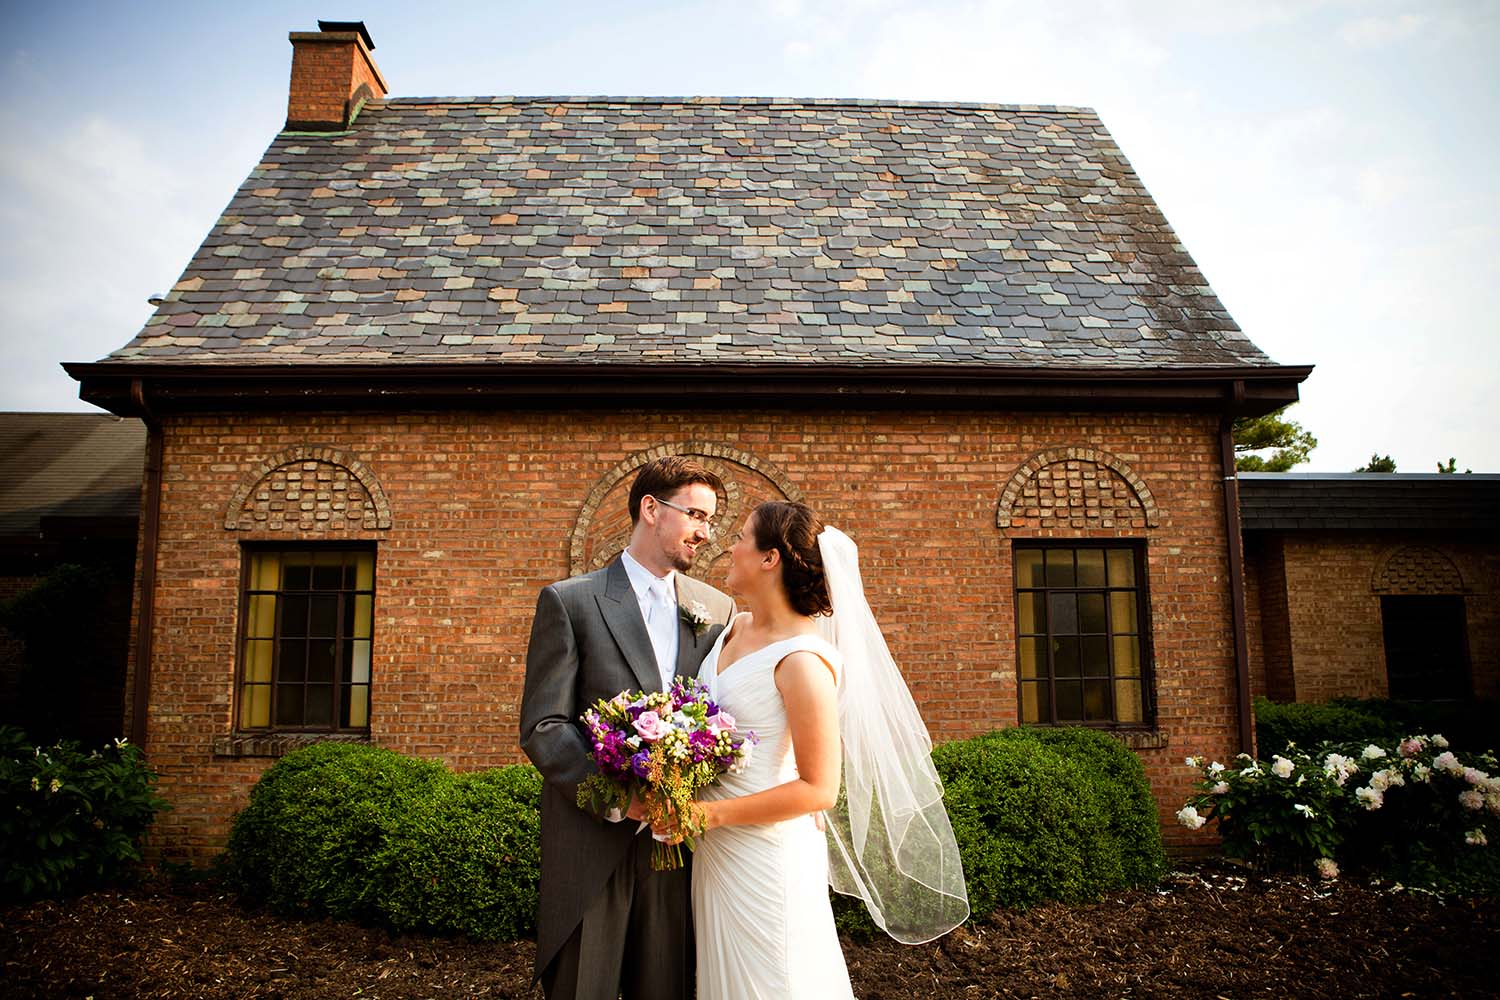 English Garden wedding portrait Elmhurst Illinois Wilder Mansion